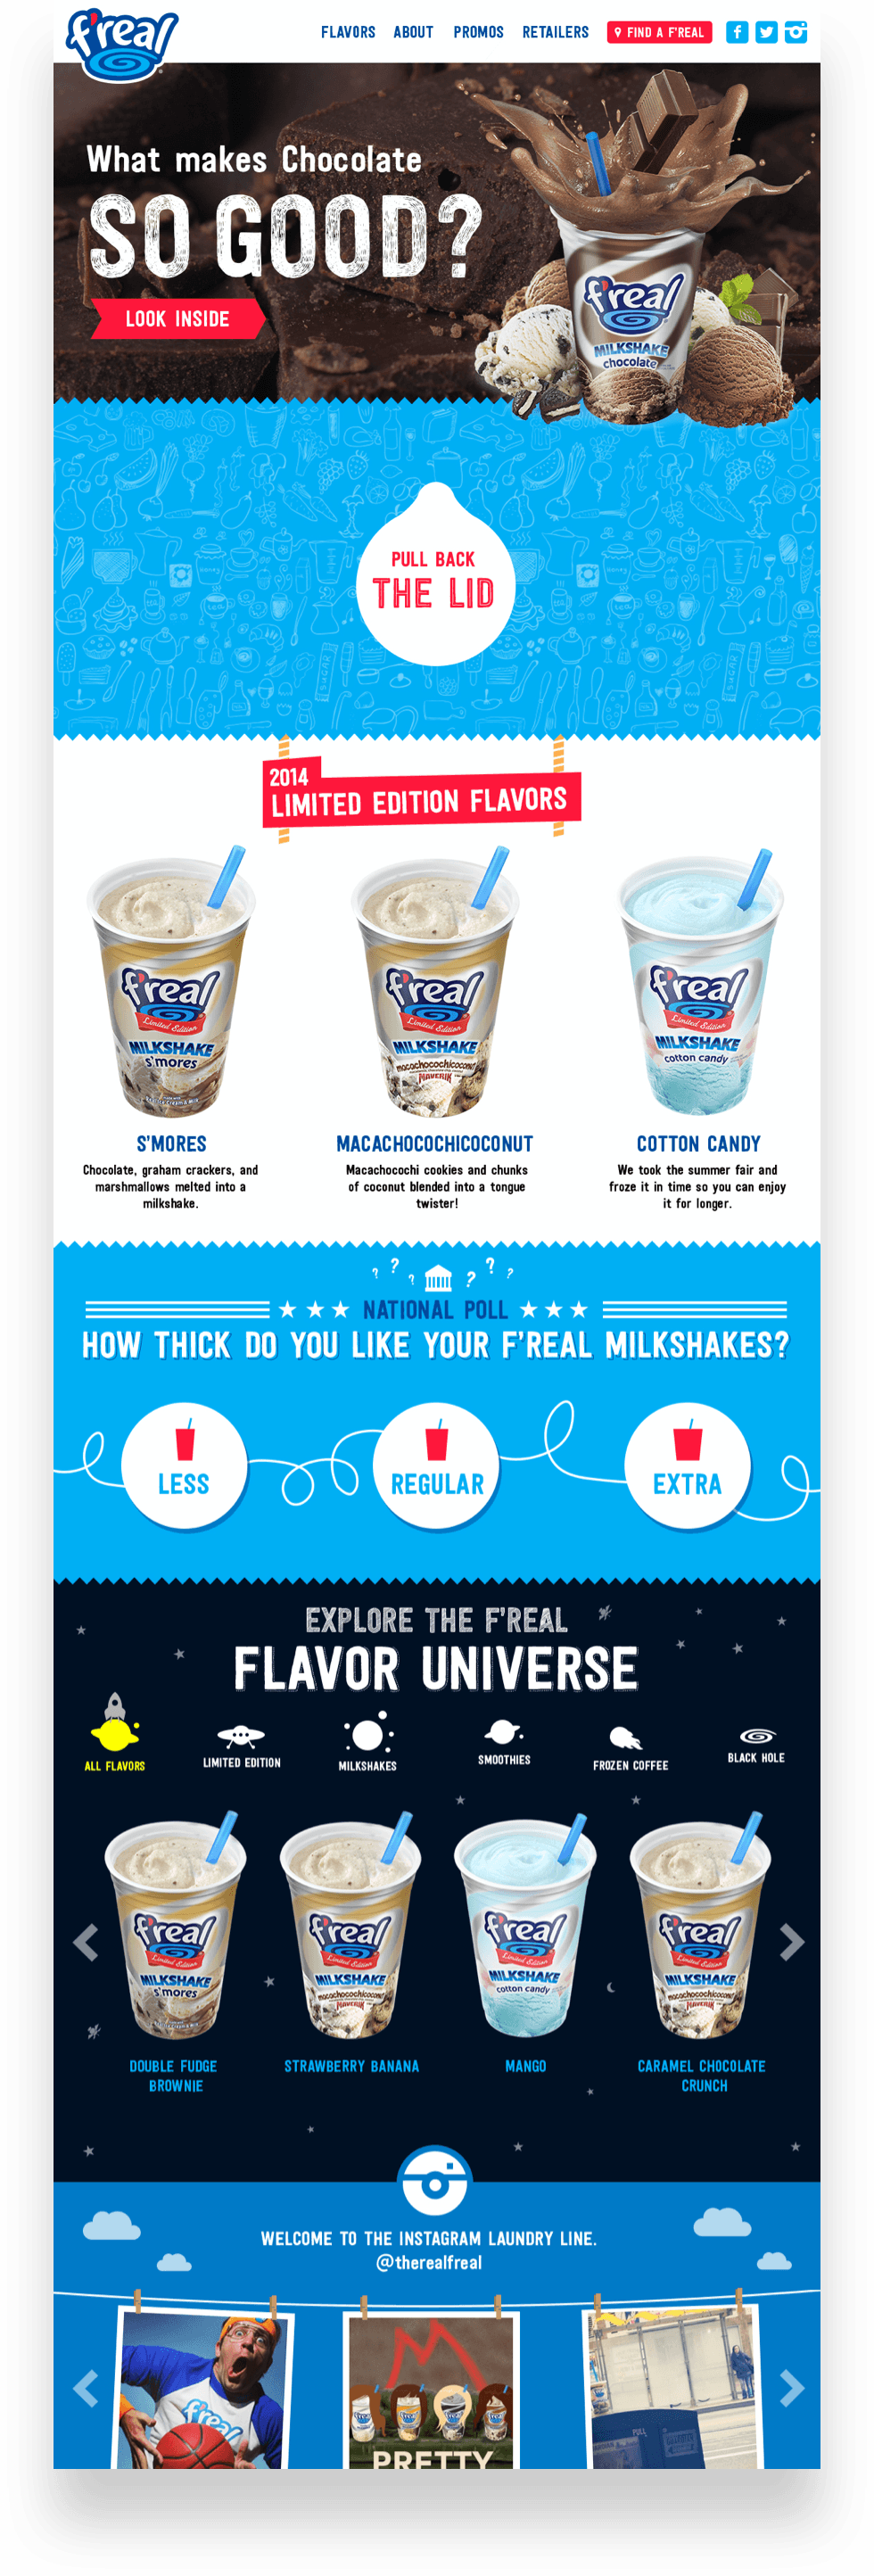 f'real Foods - The Solution Image